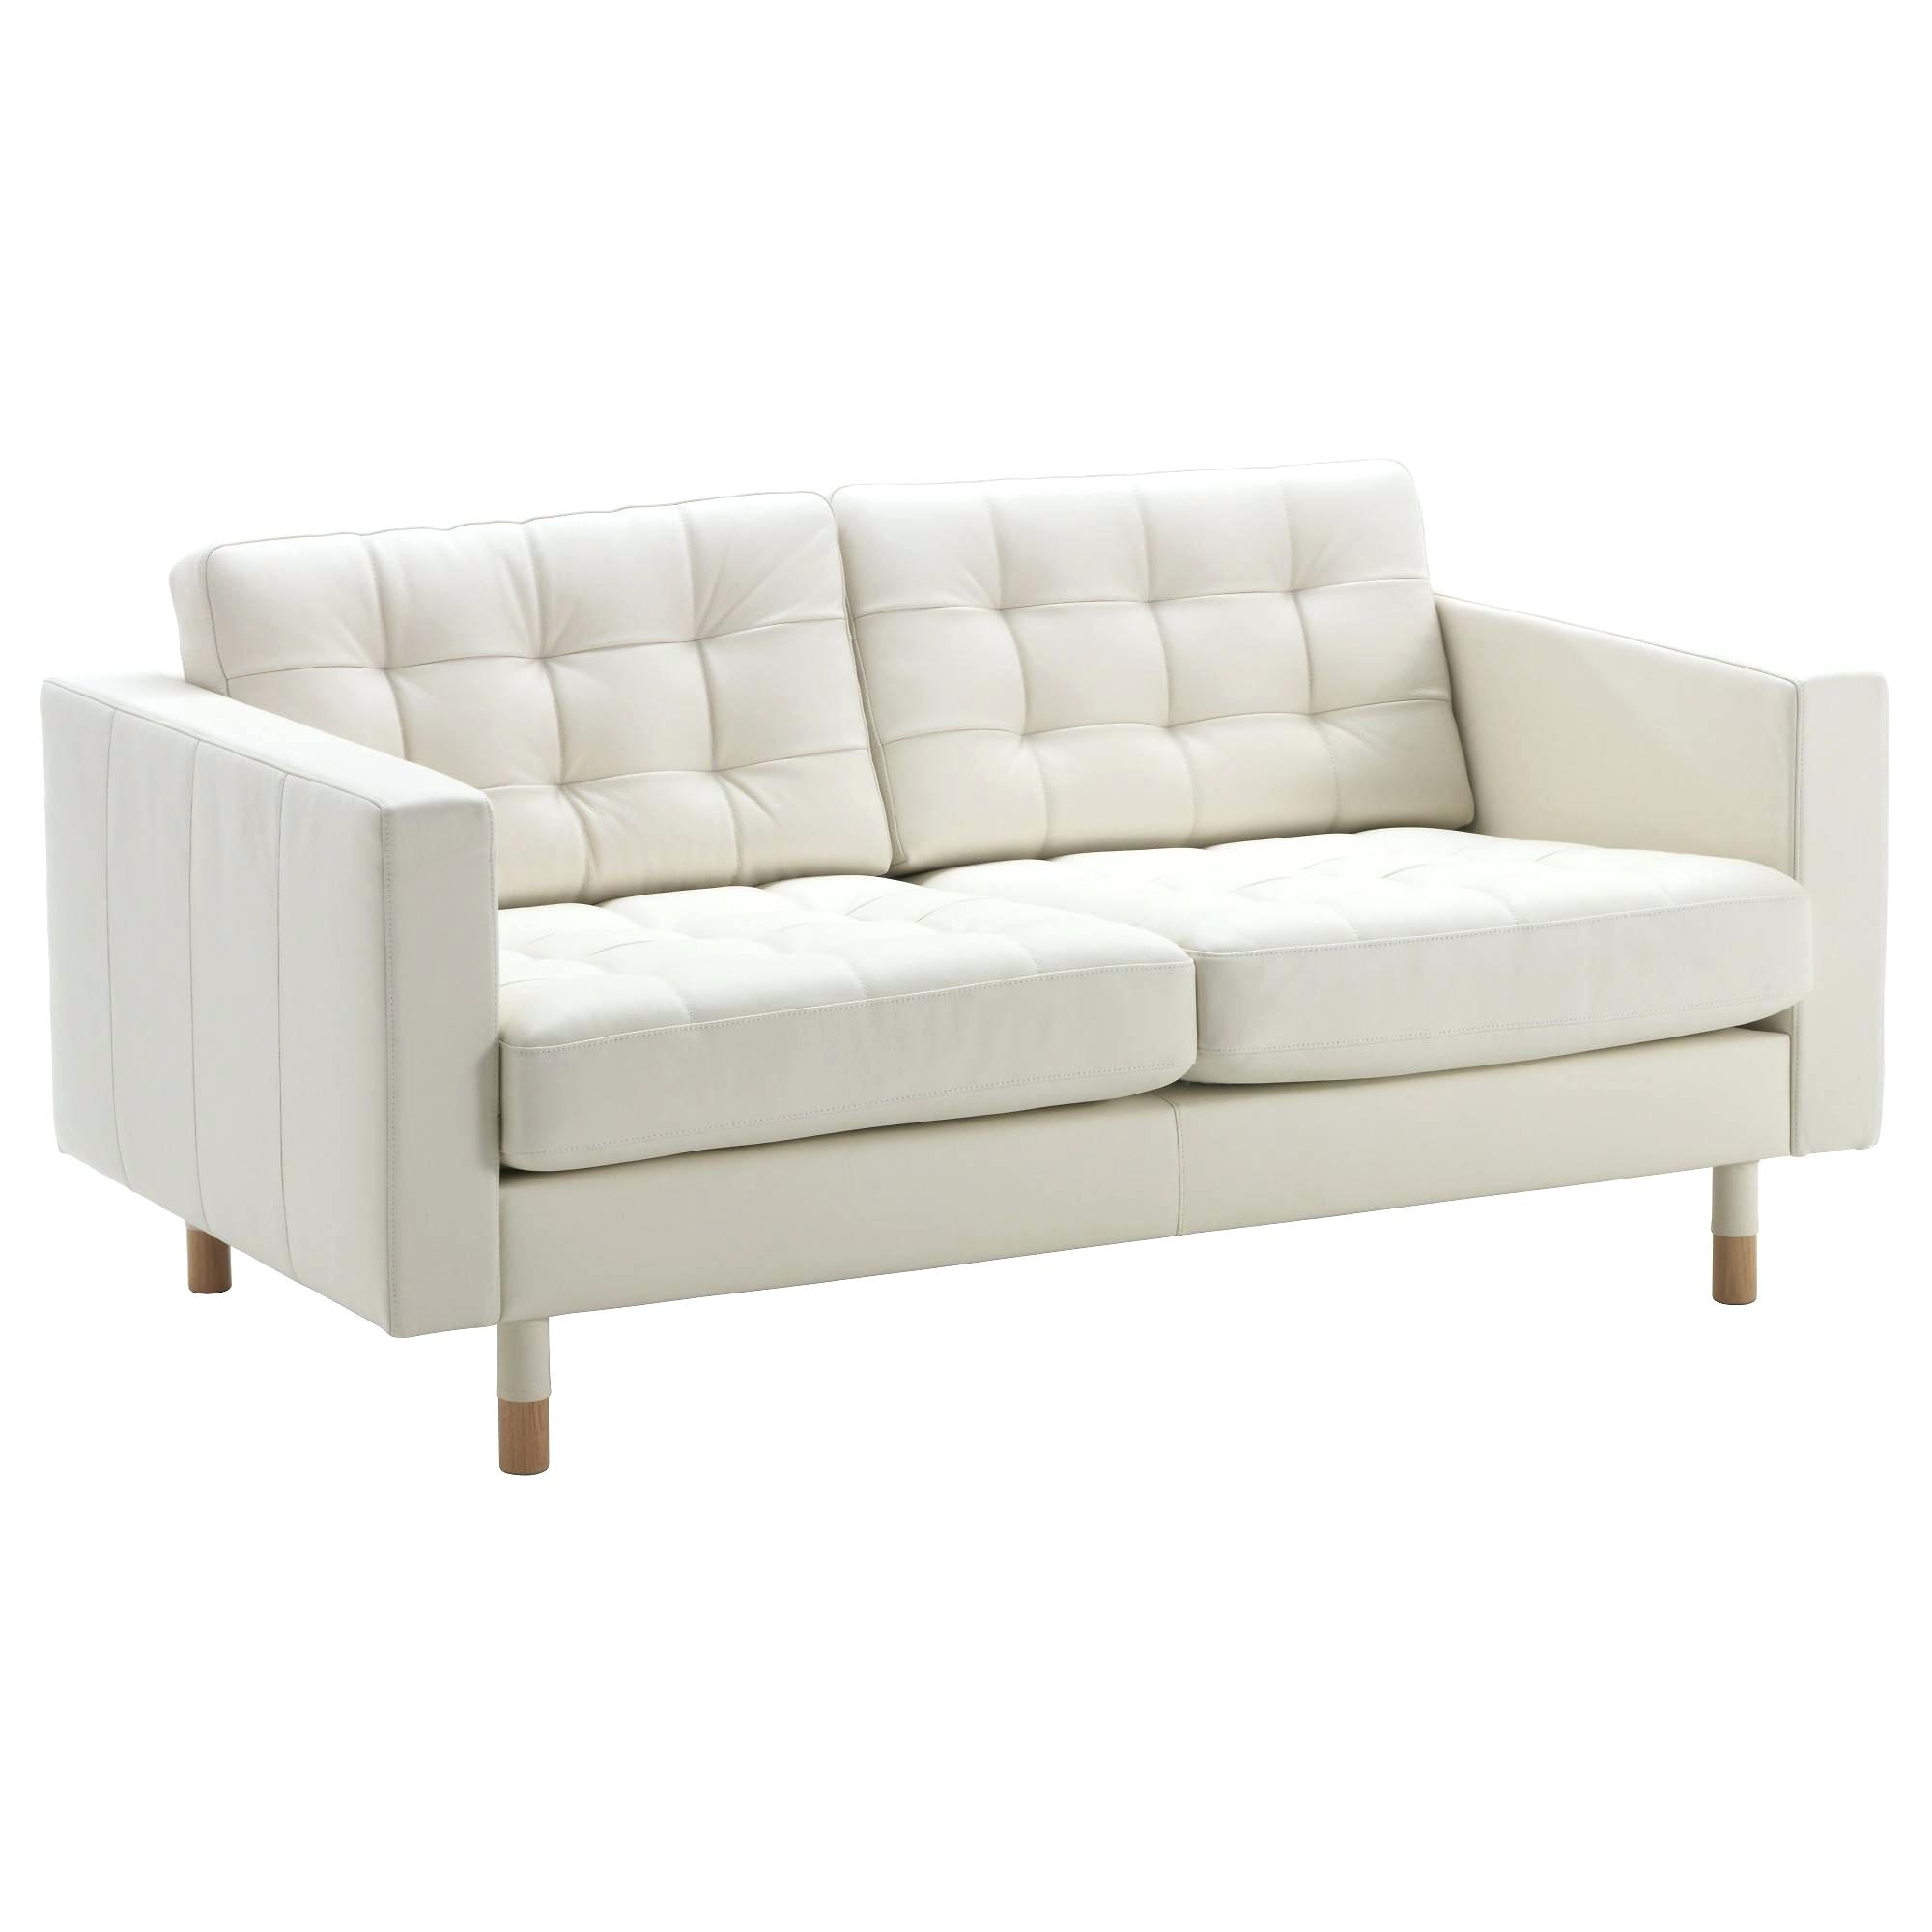 Favorite Small 2 Seater Sofas Pertaining To Small Sofas Leather Ikea 2 Seater Sofa With Storage Target (View 13 of 20)